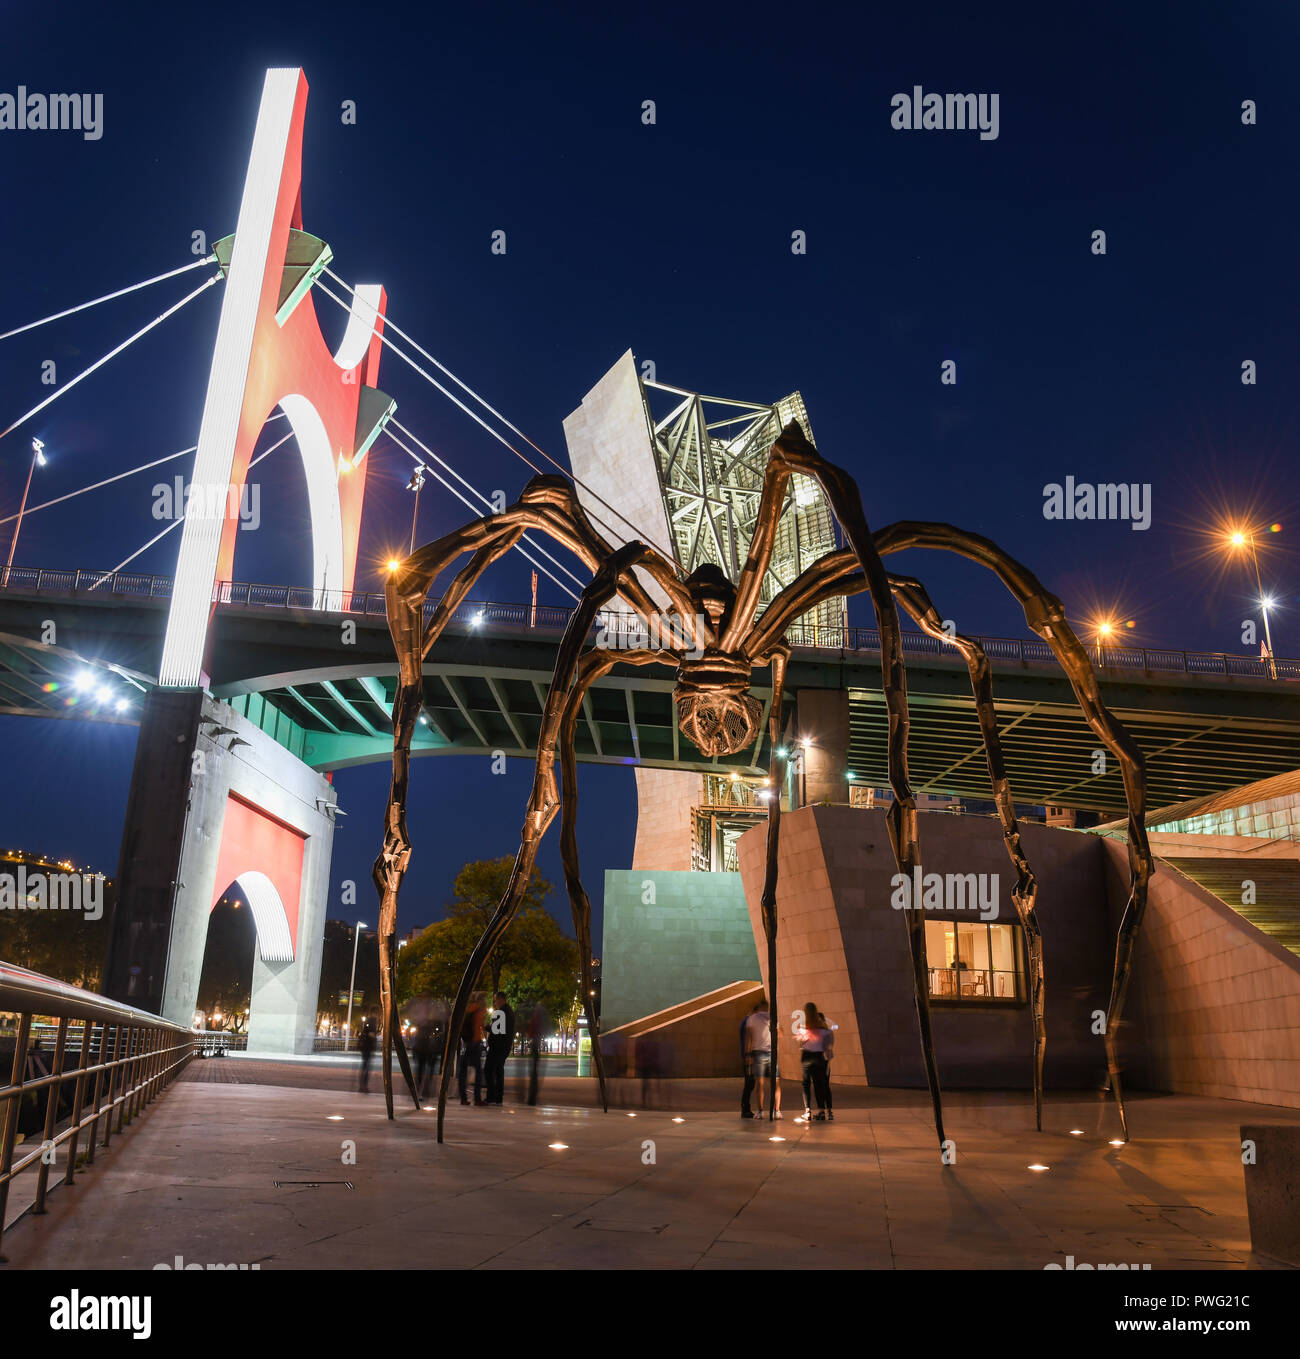 Modern art in Bilbao: spider and reflections at nightfall - Stock Image